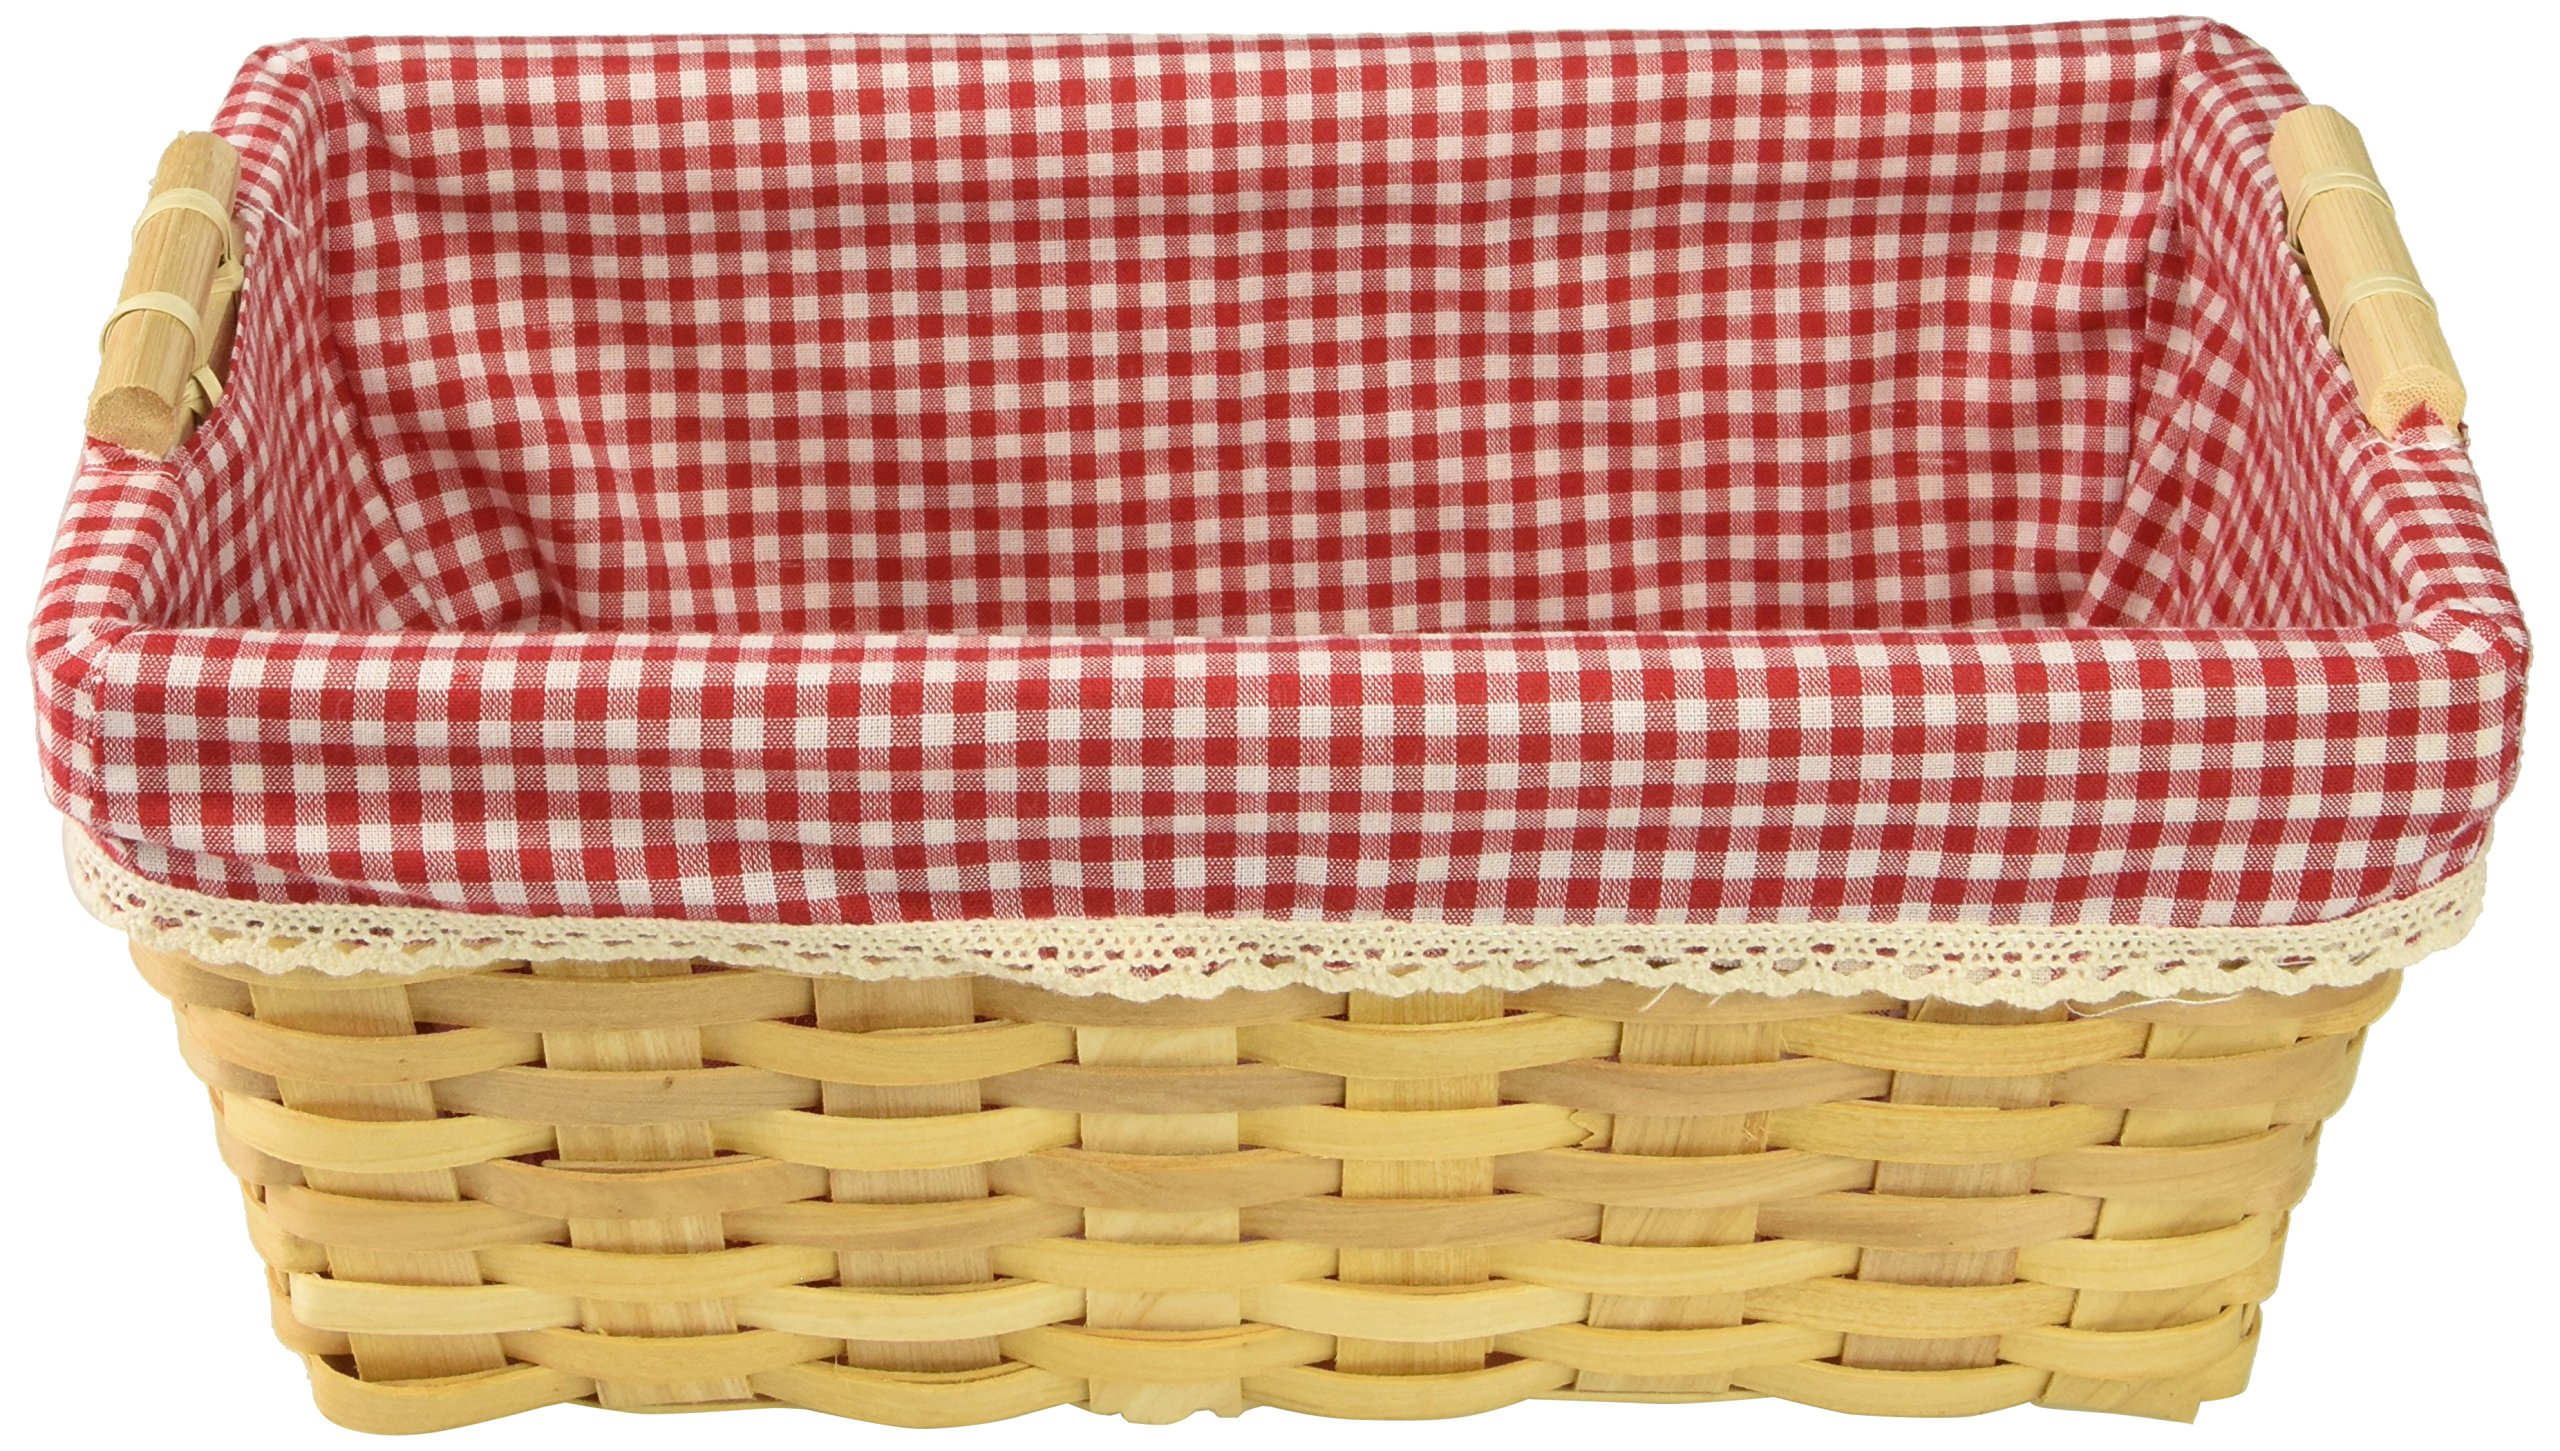 Vintiquewise(TM) Gingham Lined Baskets Set of 2 by Vintiquewise (Image #4)